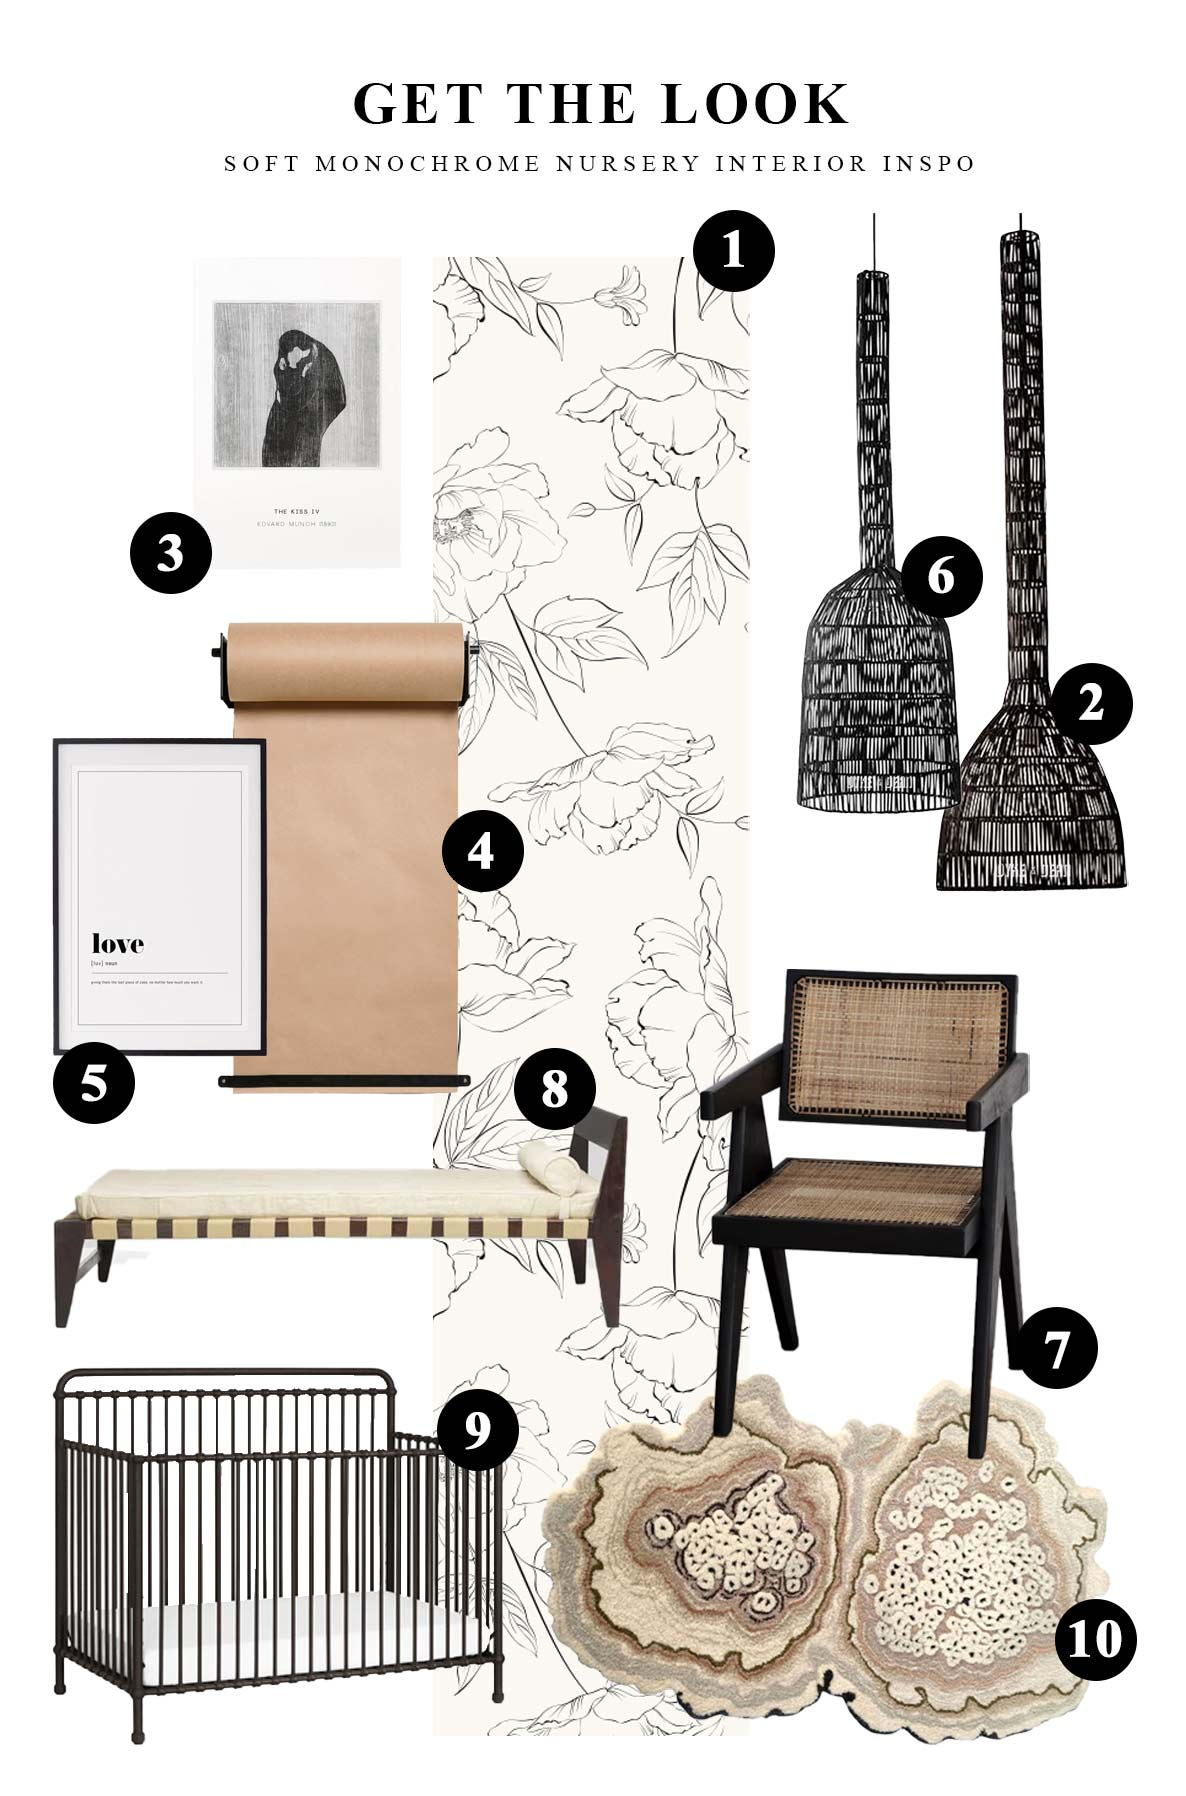 Get the look of our minimal & soft monochrome nursery interior mood board